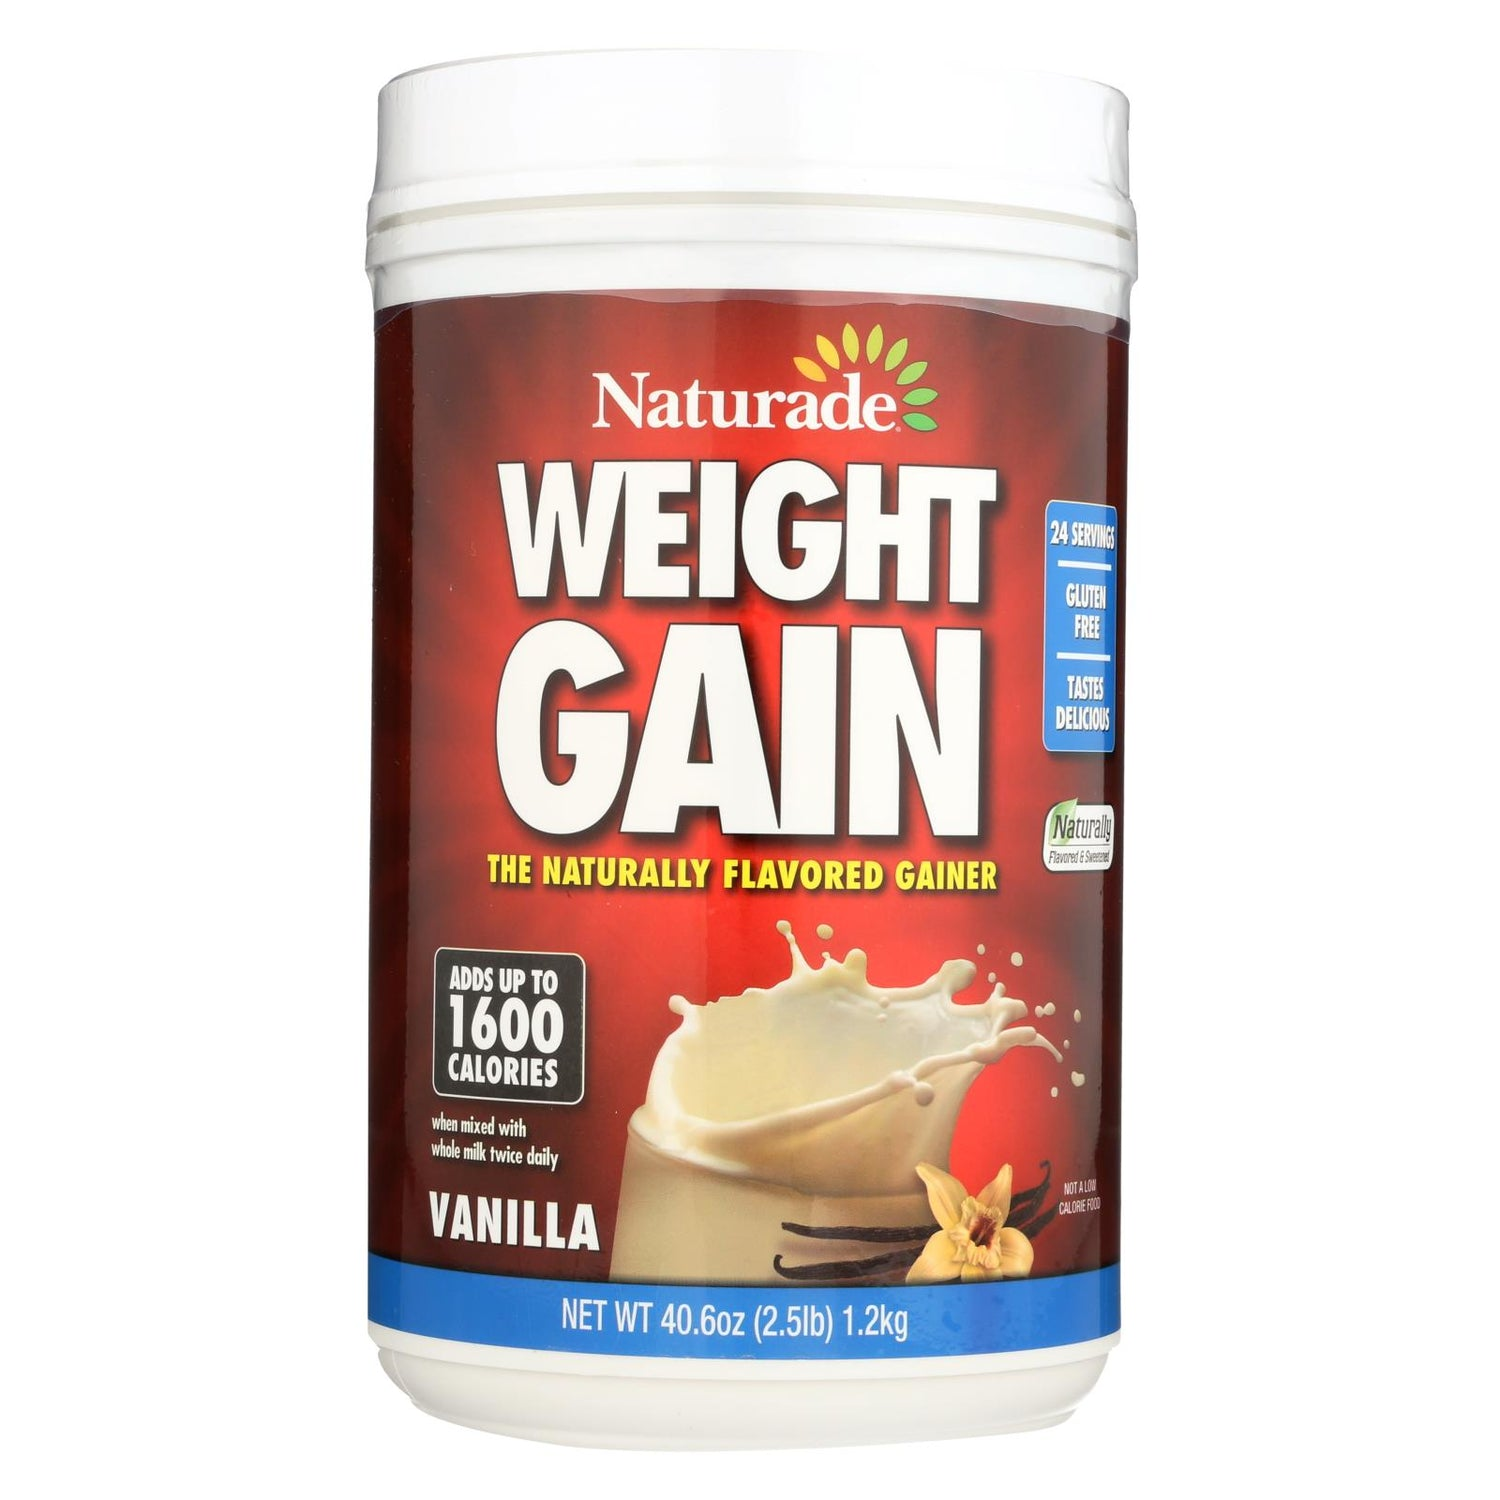 Naturade Weight Gain Vanilla - 40 Oz